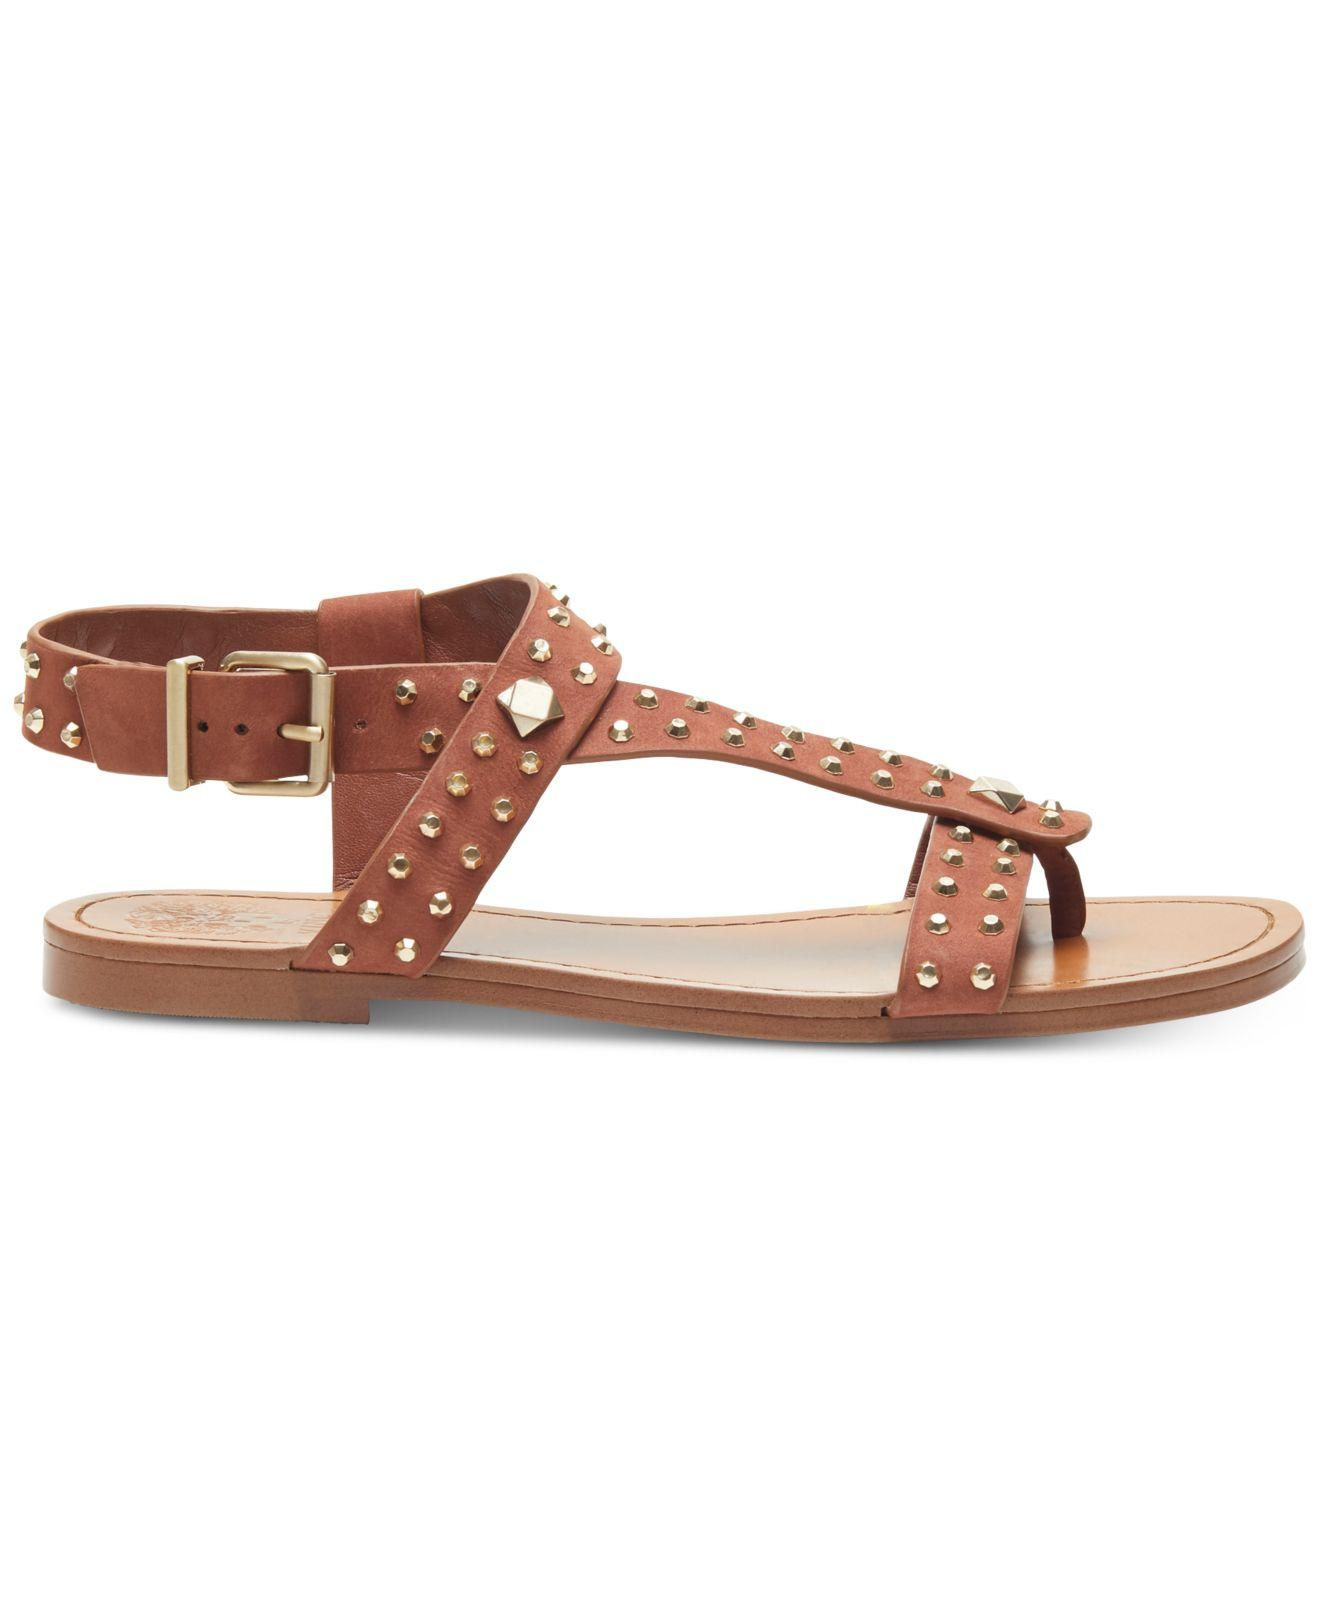 cc716a081d9b Lyst - Vince Camuto Ravensa Flat Sandals in Brown